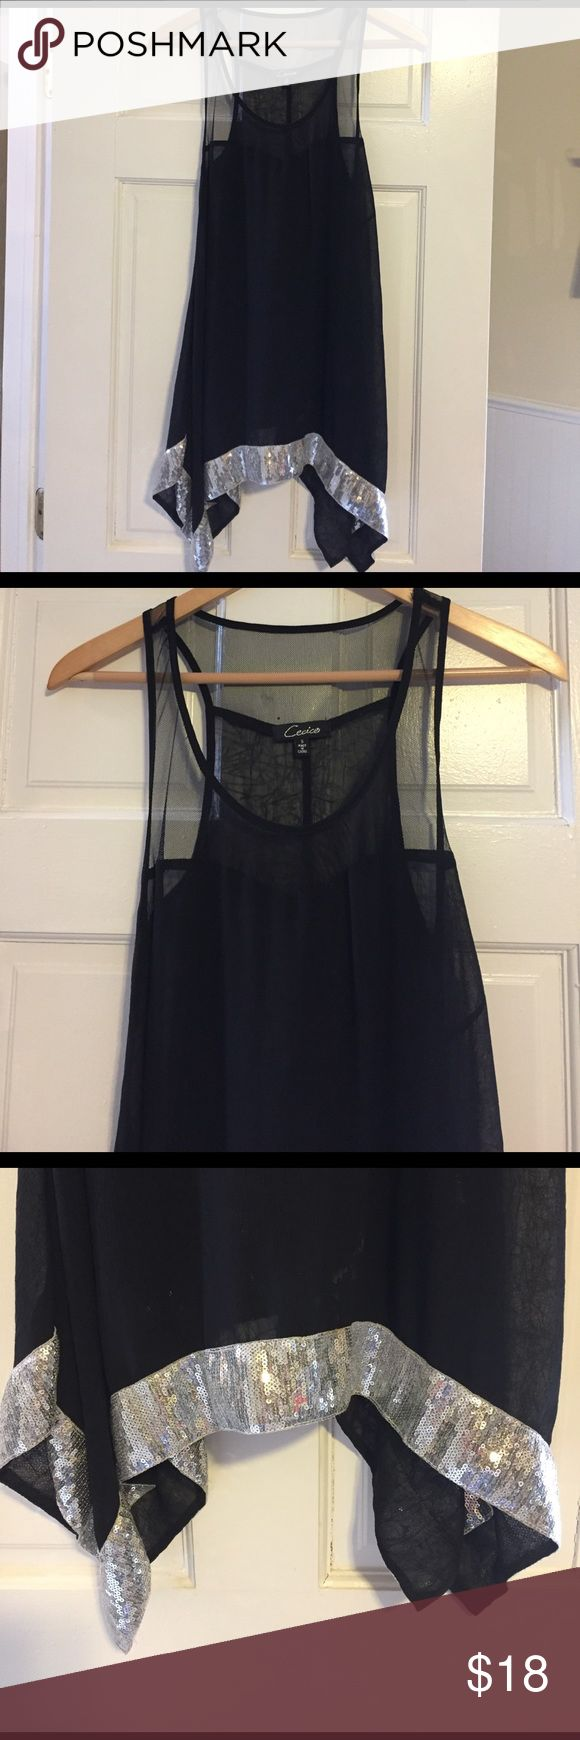 Price cut ❗️Beautiful long black sheer tank top Beautiful long black sheer tank top with silvers sequins trim at bottom. Boutique brand, new condition, size small. Perfect with a pair of leggings and heels or over a bandeau 👠❤️ Tops Tank Tops